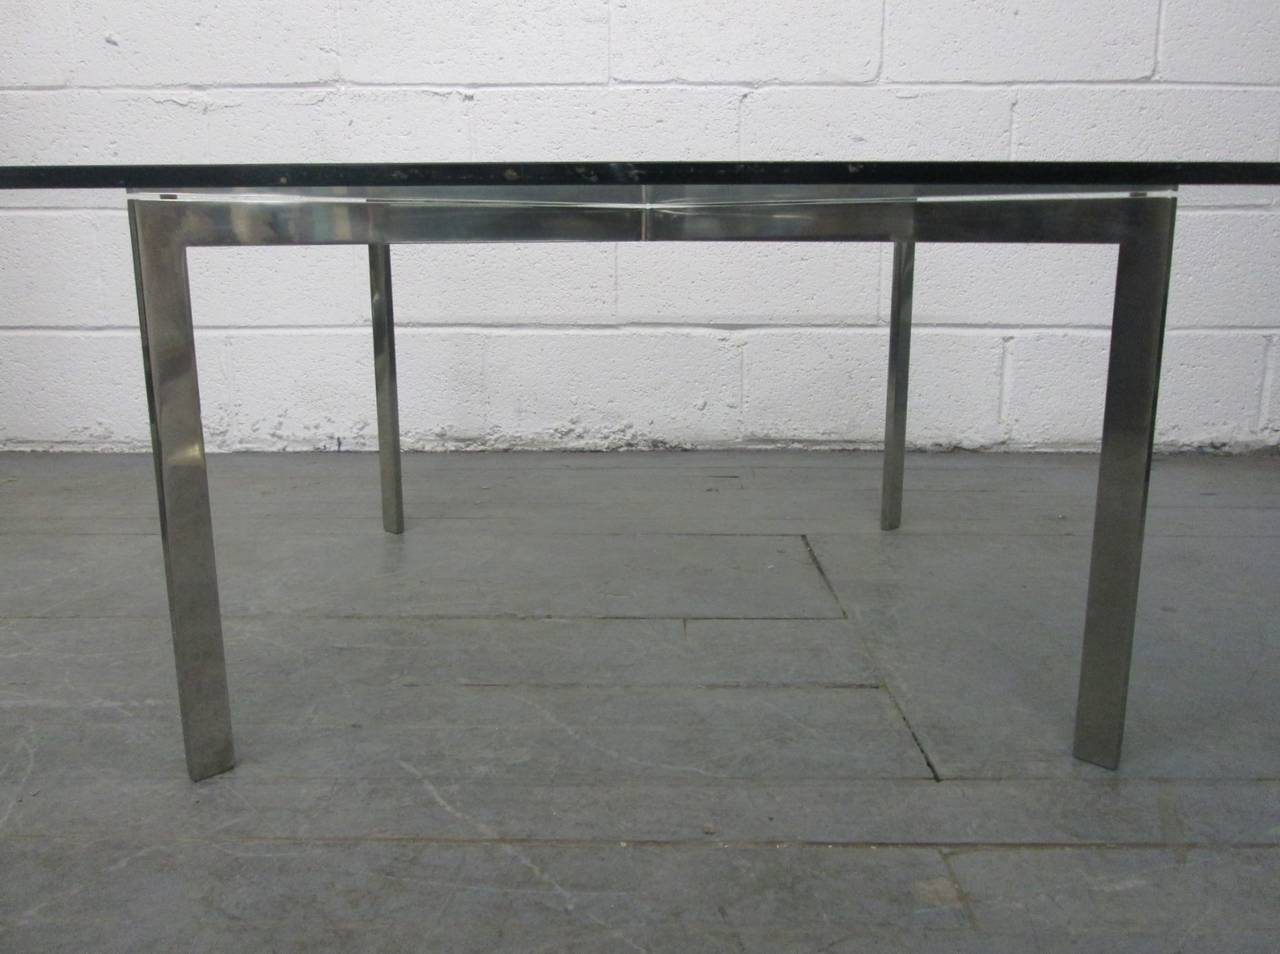 Barcelona table base by mies van der rohe for knoll for sale at 1stdibs - Knoll barcelona table ...